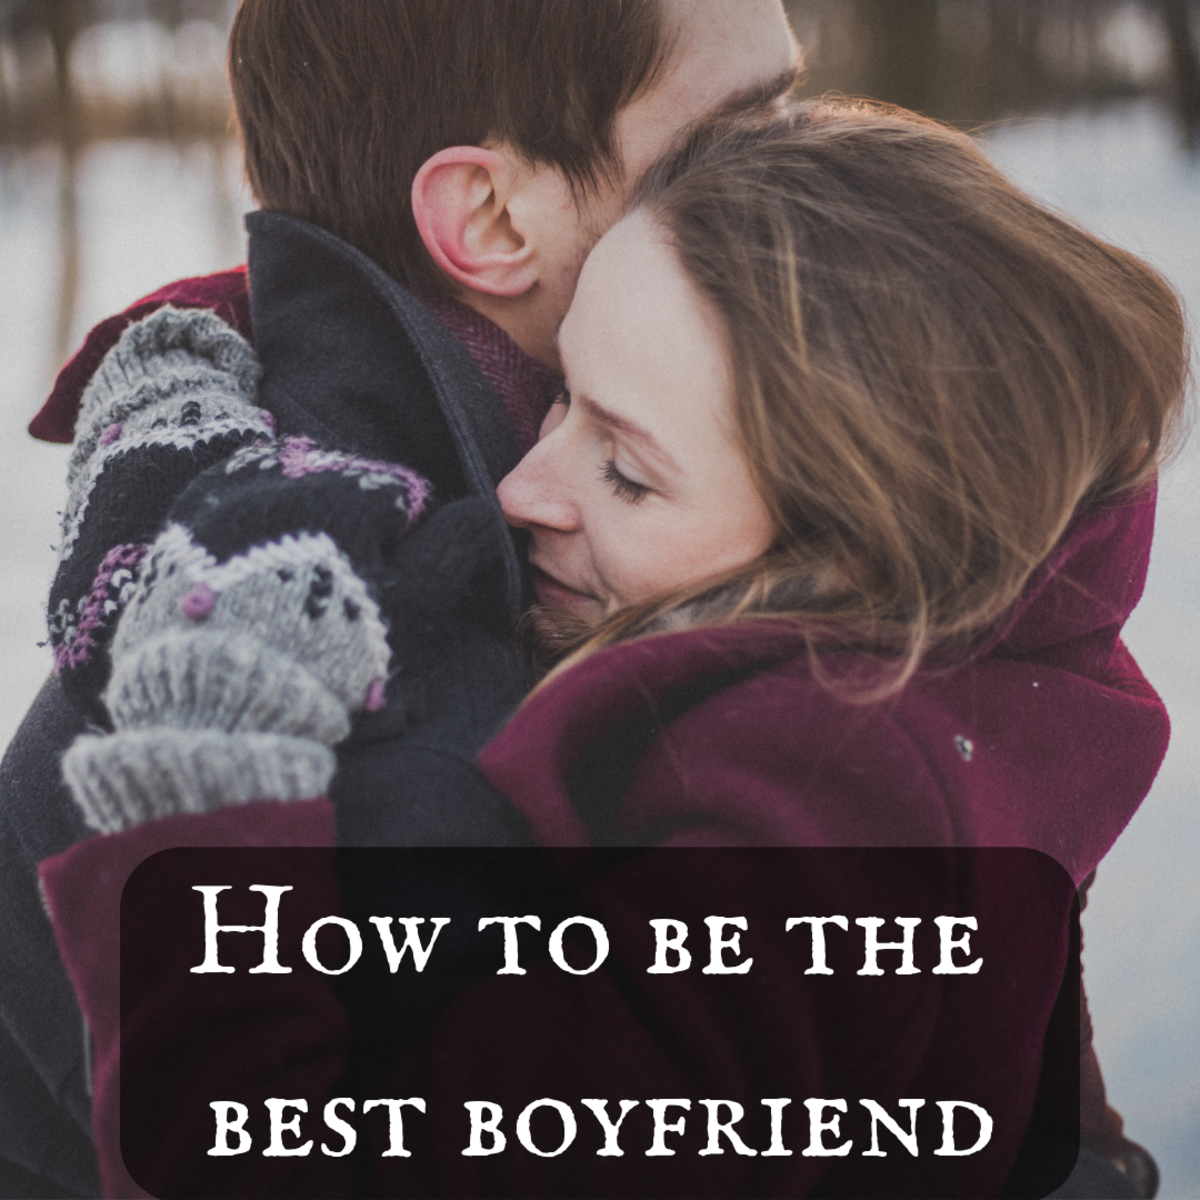 Here are some tips on how you can be the best boyfriend possible.